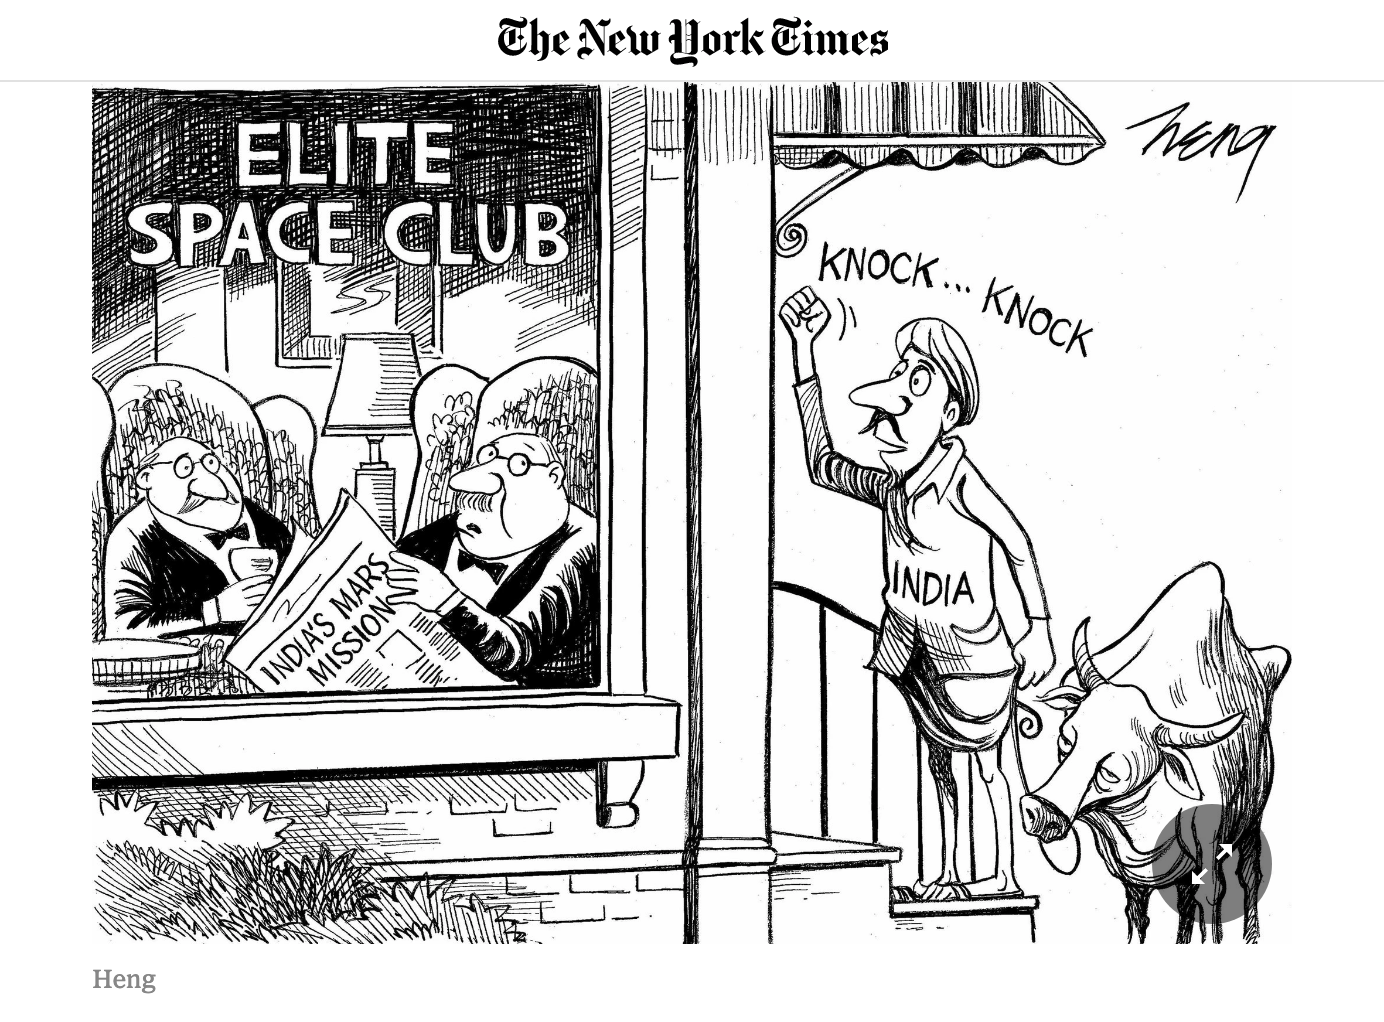 New York Times published this elitist cartoon referring to India's space mission